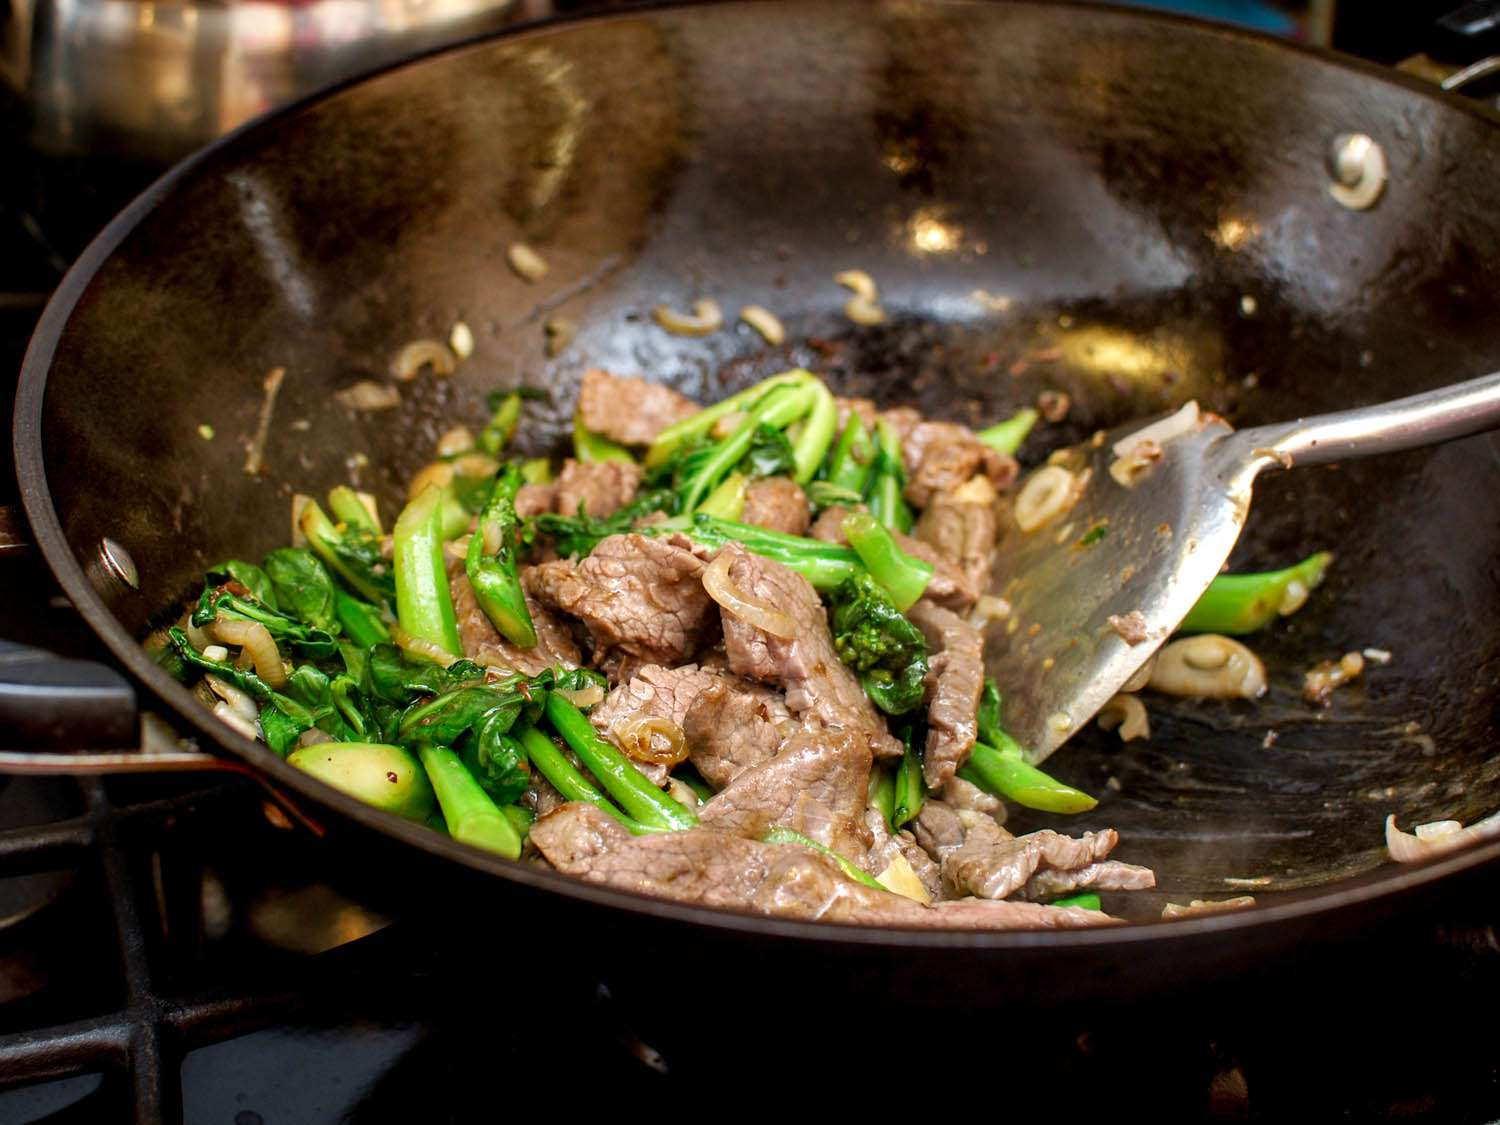 20150316-stir-fry-beef-with-chinese-broccoli-shao-zhong-11.jpg